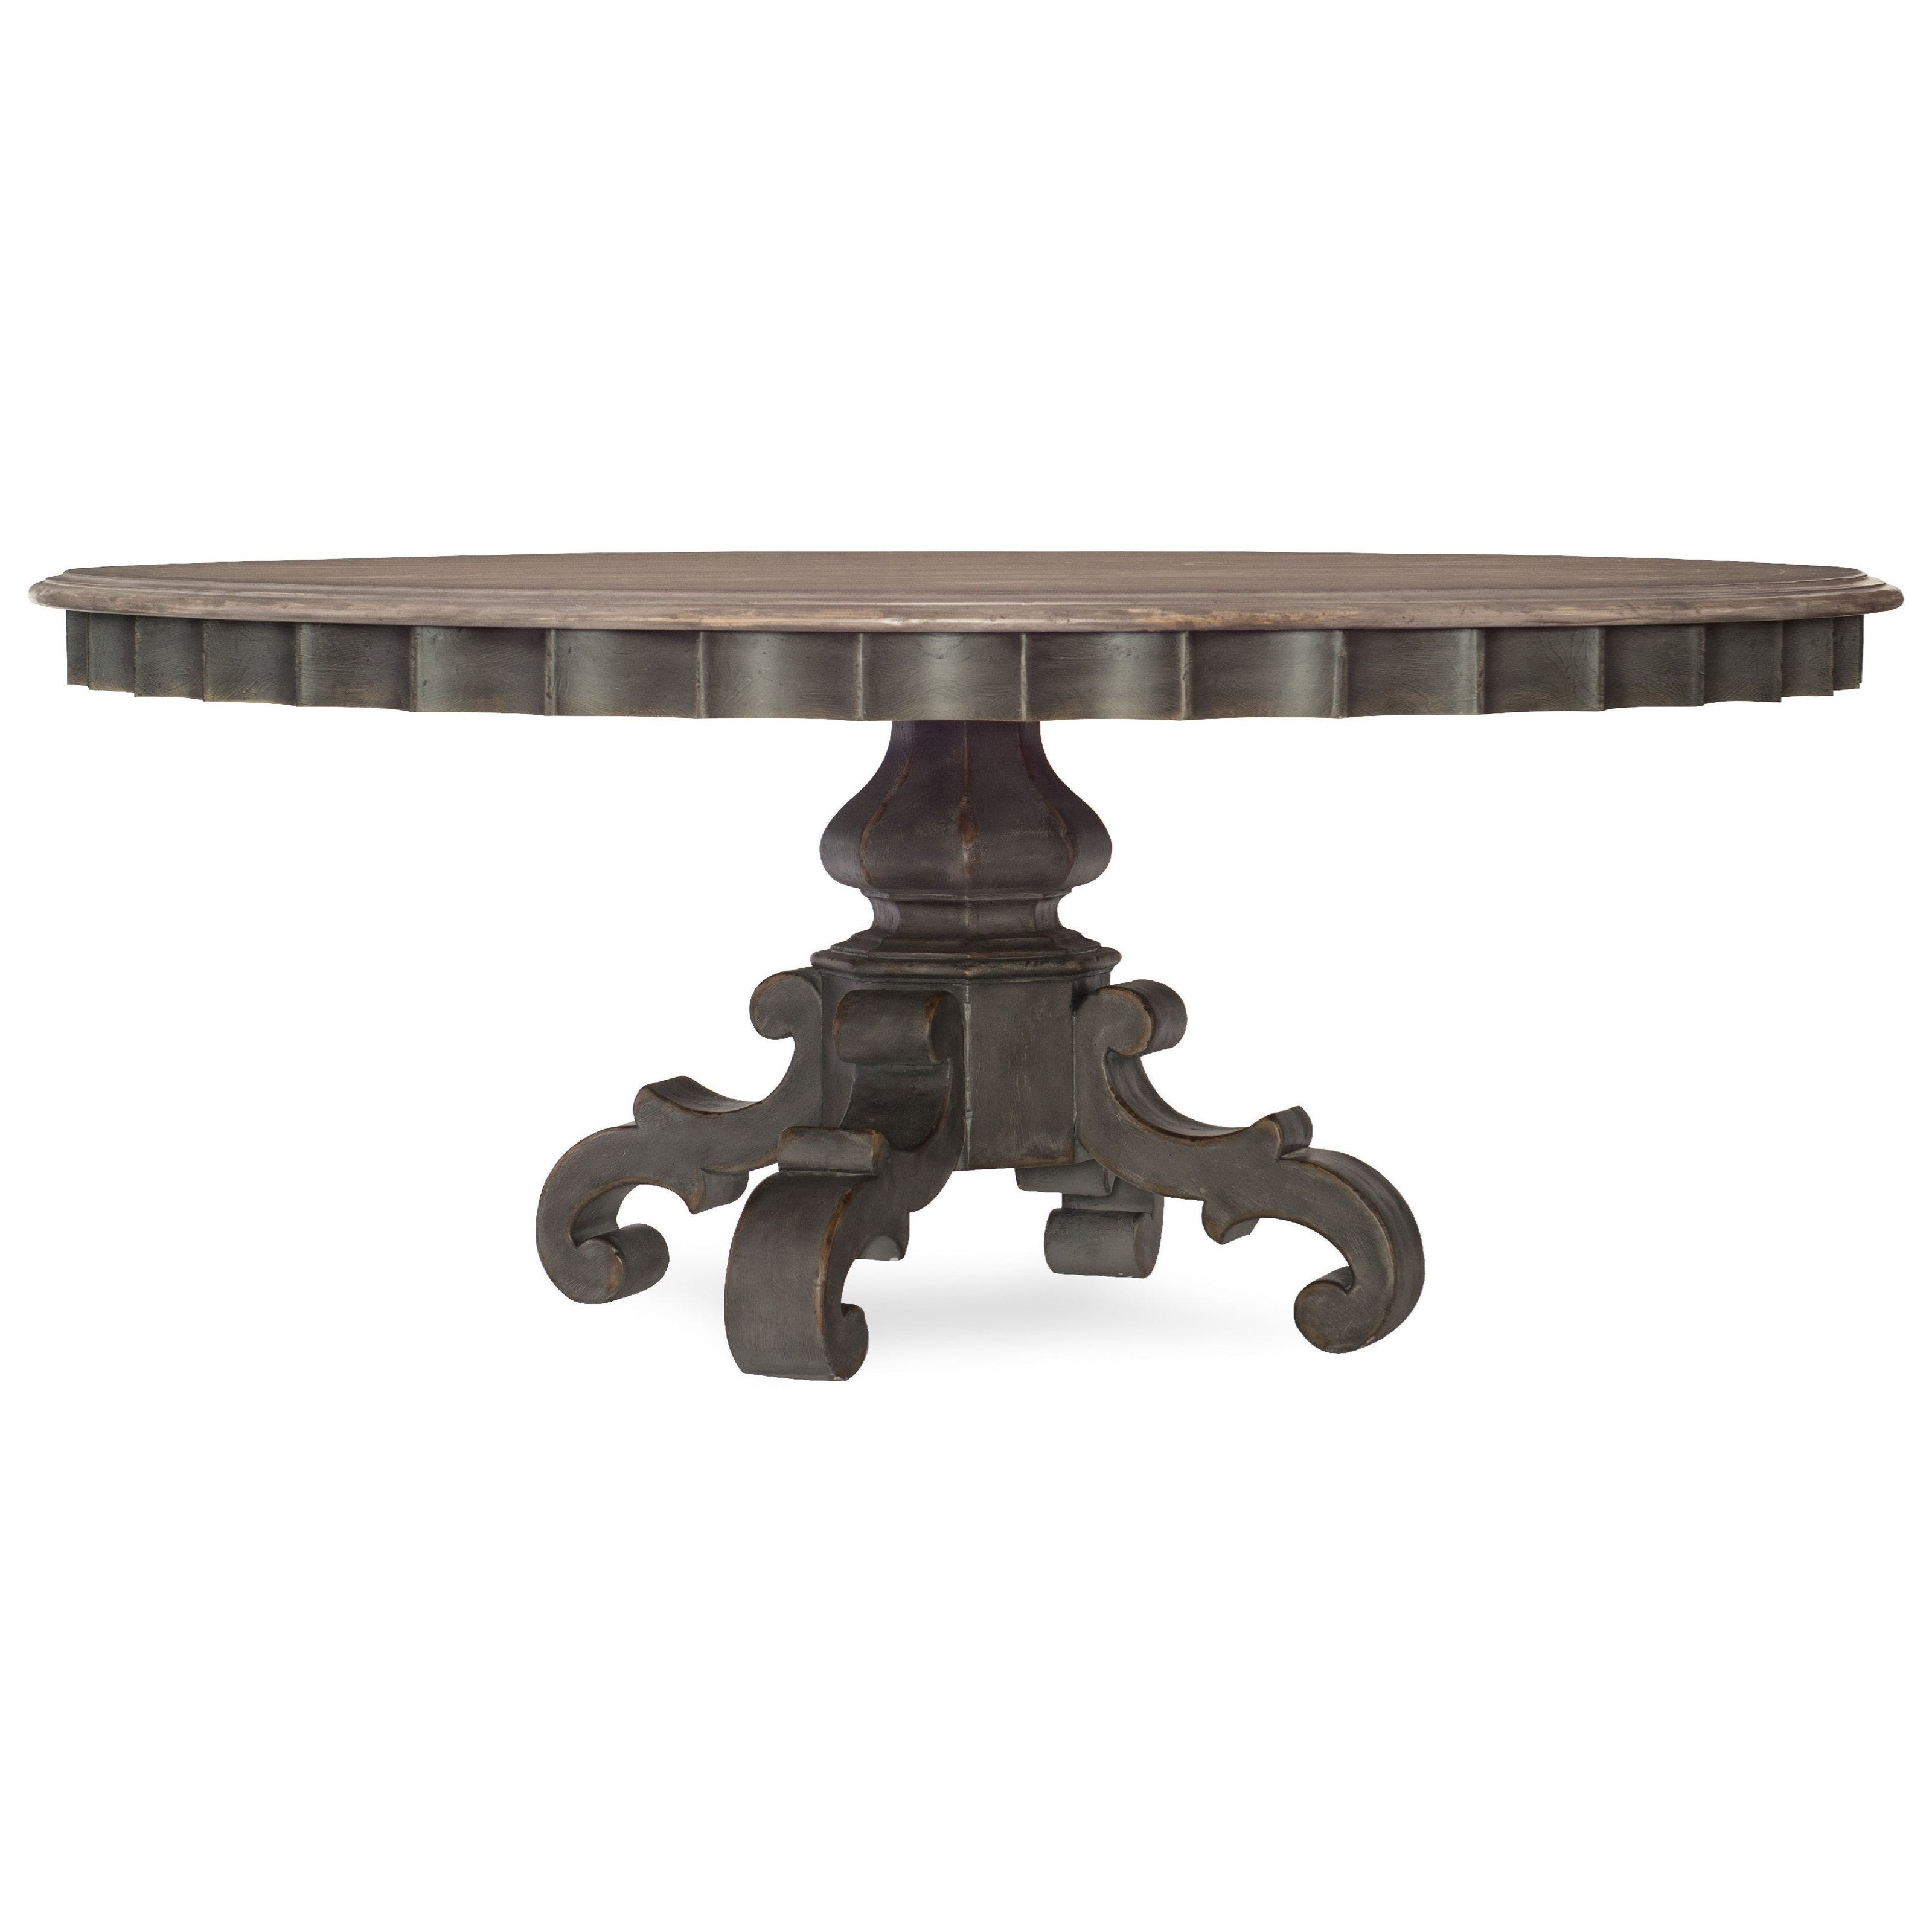 Arabella 72in Round Pedestal Dining Table by Hooker Furniture at Miller Waldrop Furniture and Decor